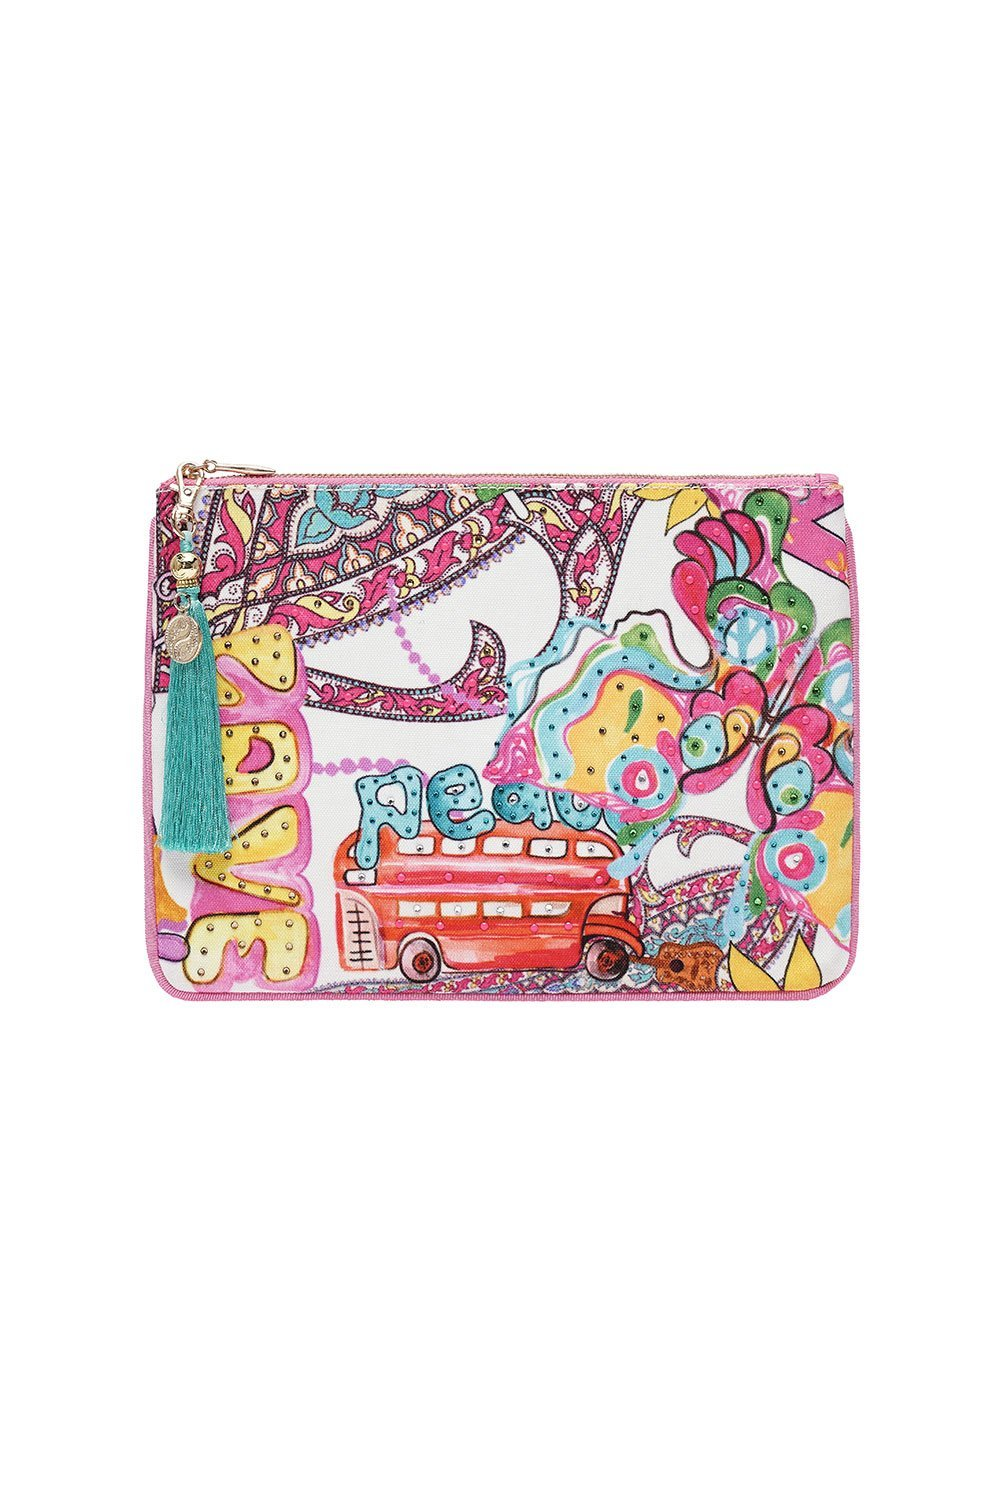 SMALL CANVAS CLUTCH LET THE SUN SHINE